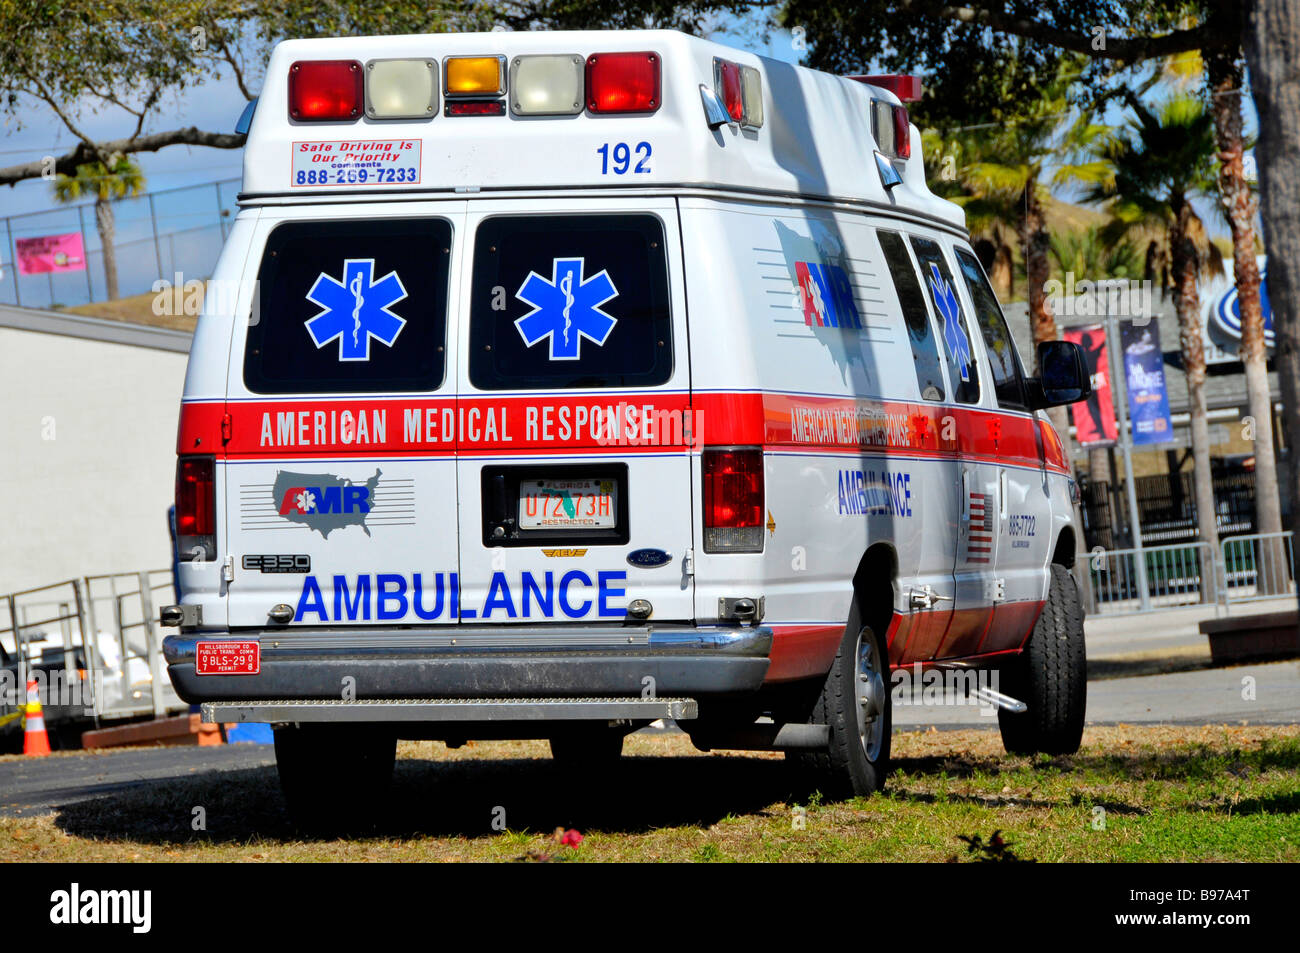 Ambulance Ready for Medical Emergency at Florida State Fairgrounds Tampa - Stock Image